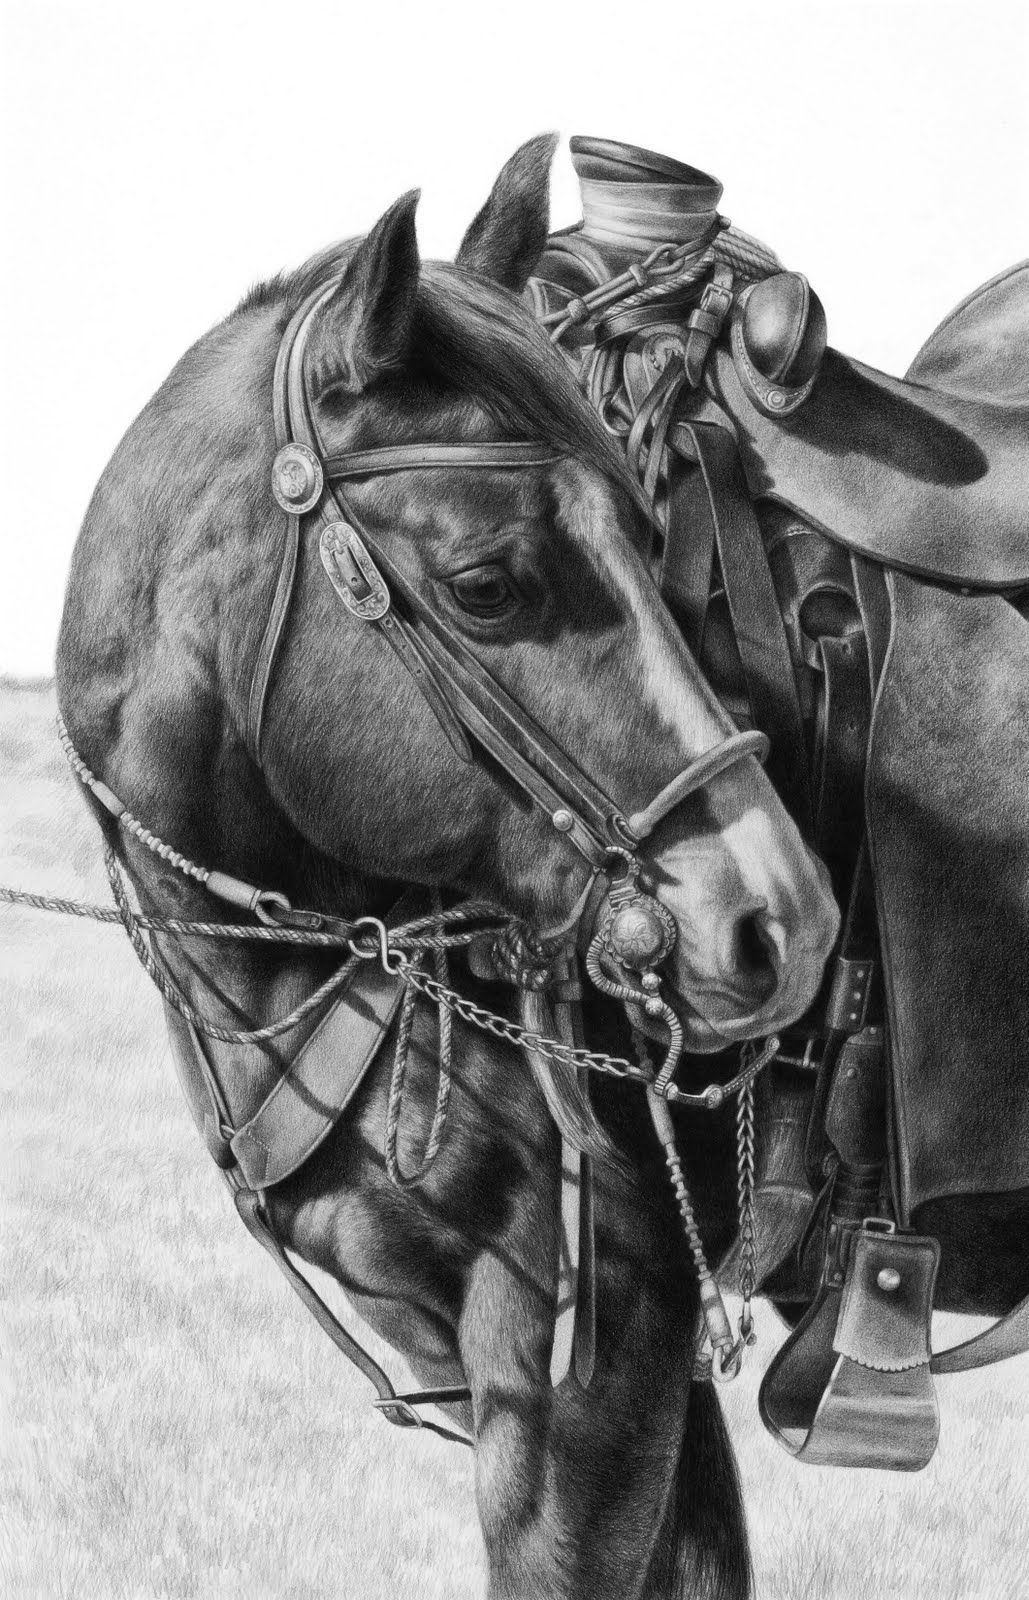 how to draw a realistic horse jumping step howtodraw horses tutorials how to draw horses with a how to horse draw realistic jumping